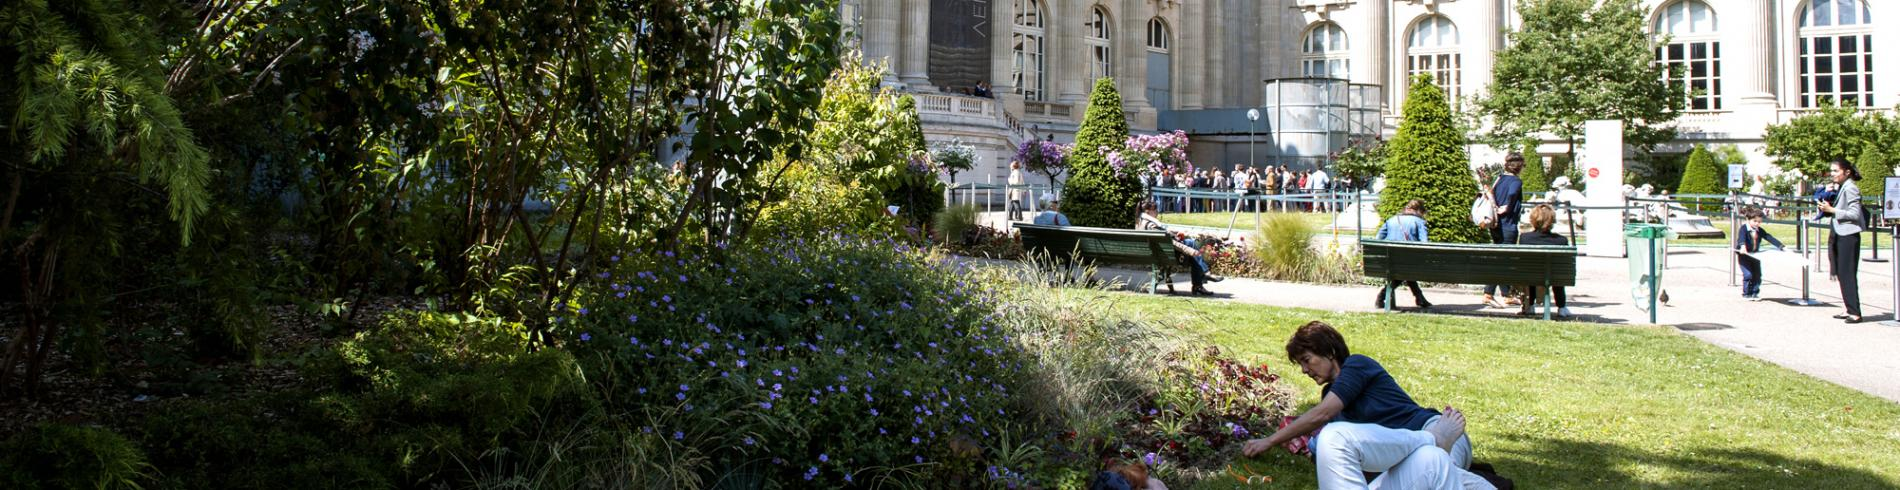 People sitting on the grass outside the Grand Palais